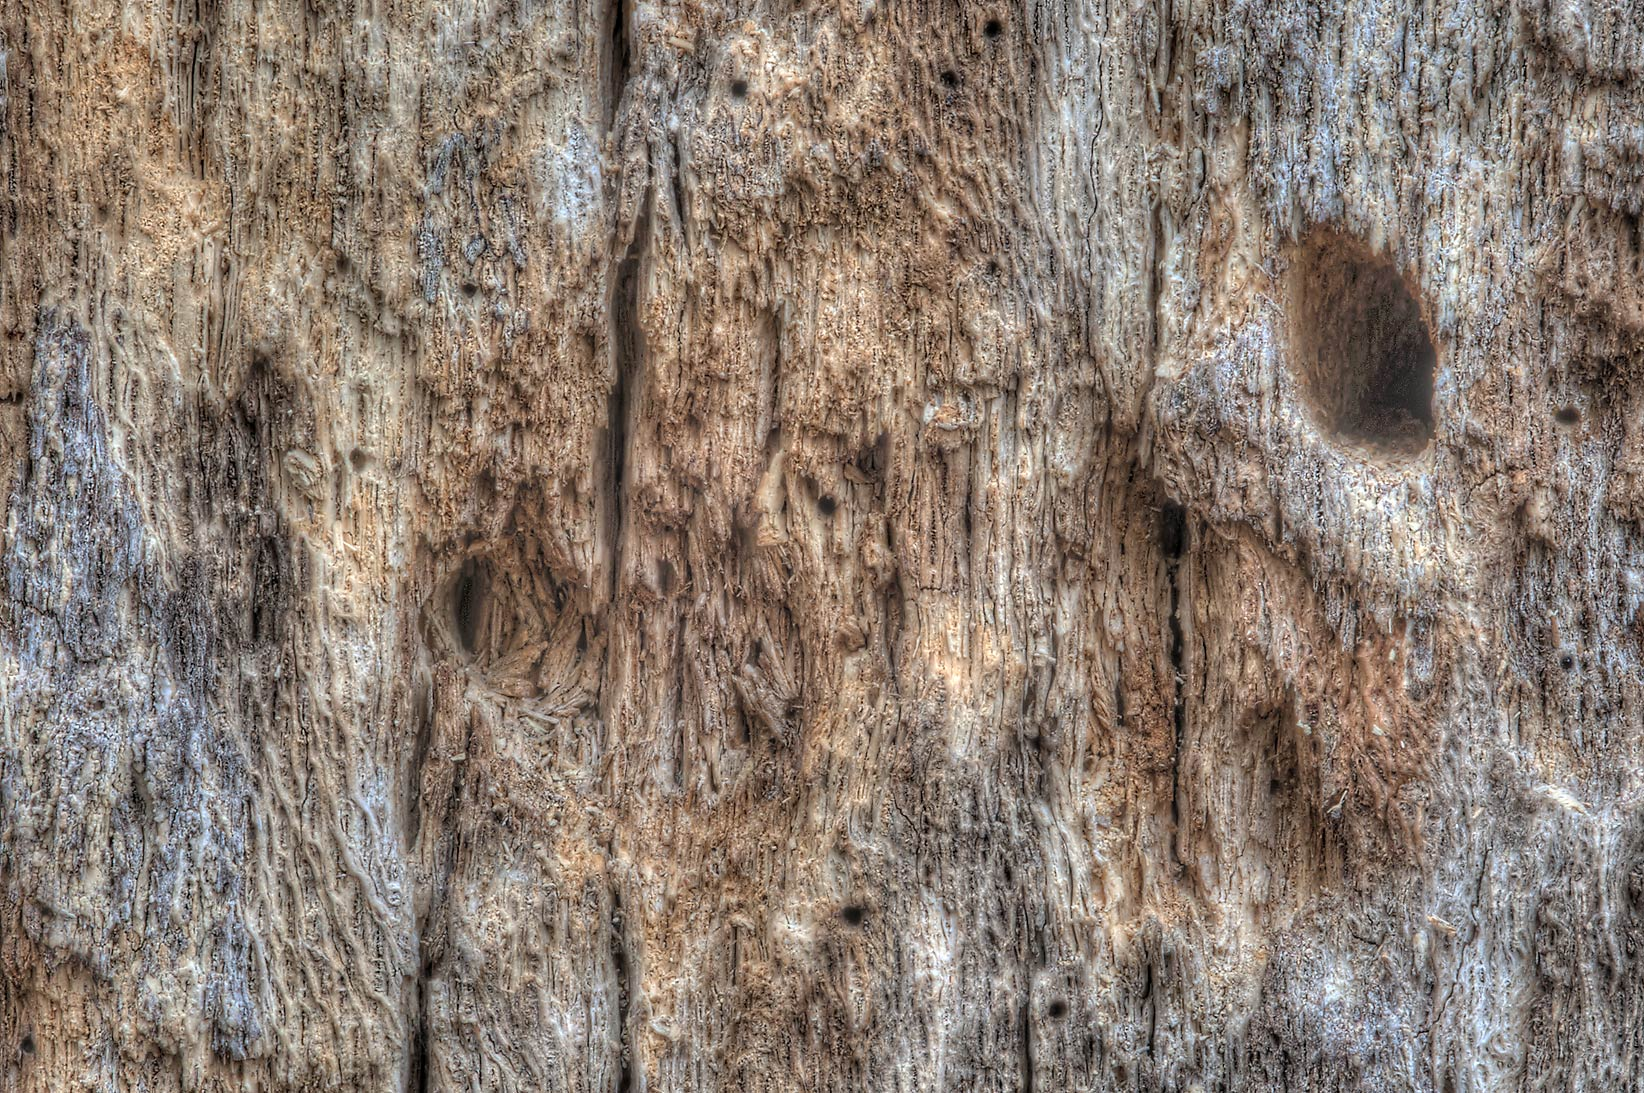 Texture of woodpecker holes on dead tree near...Creek Park. College Station, Texas